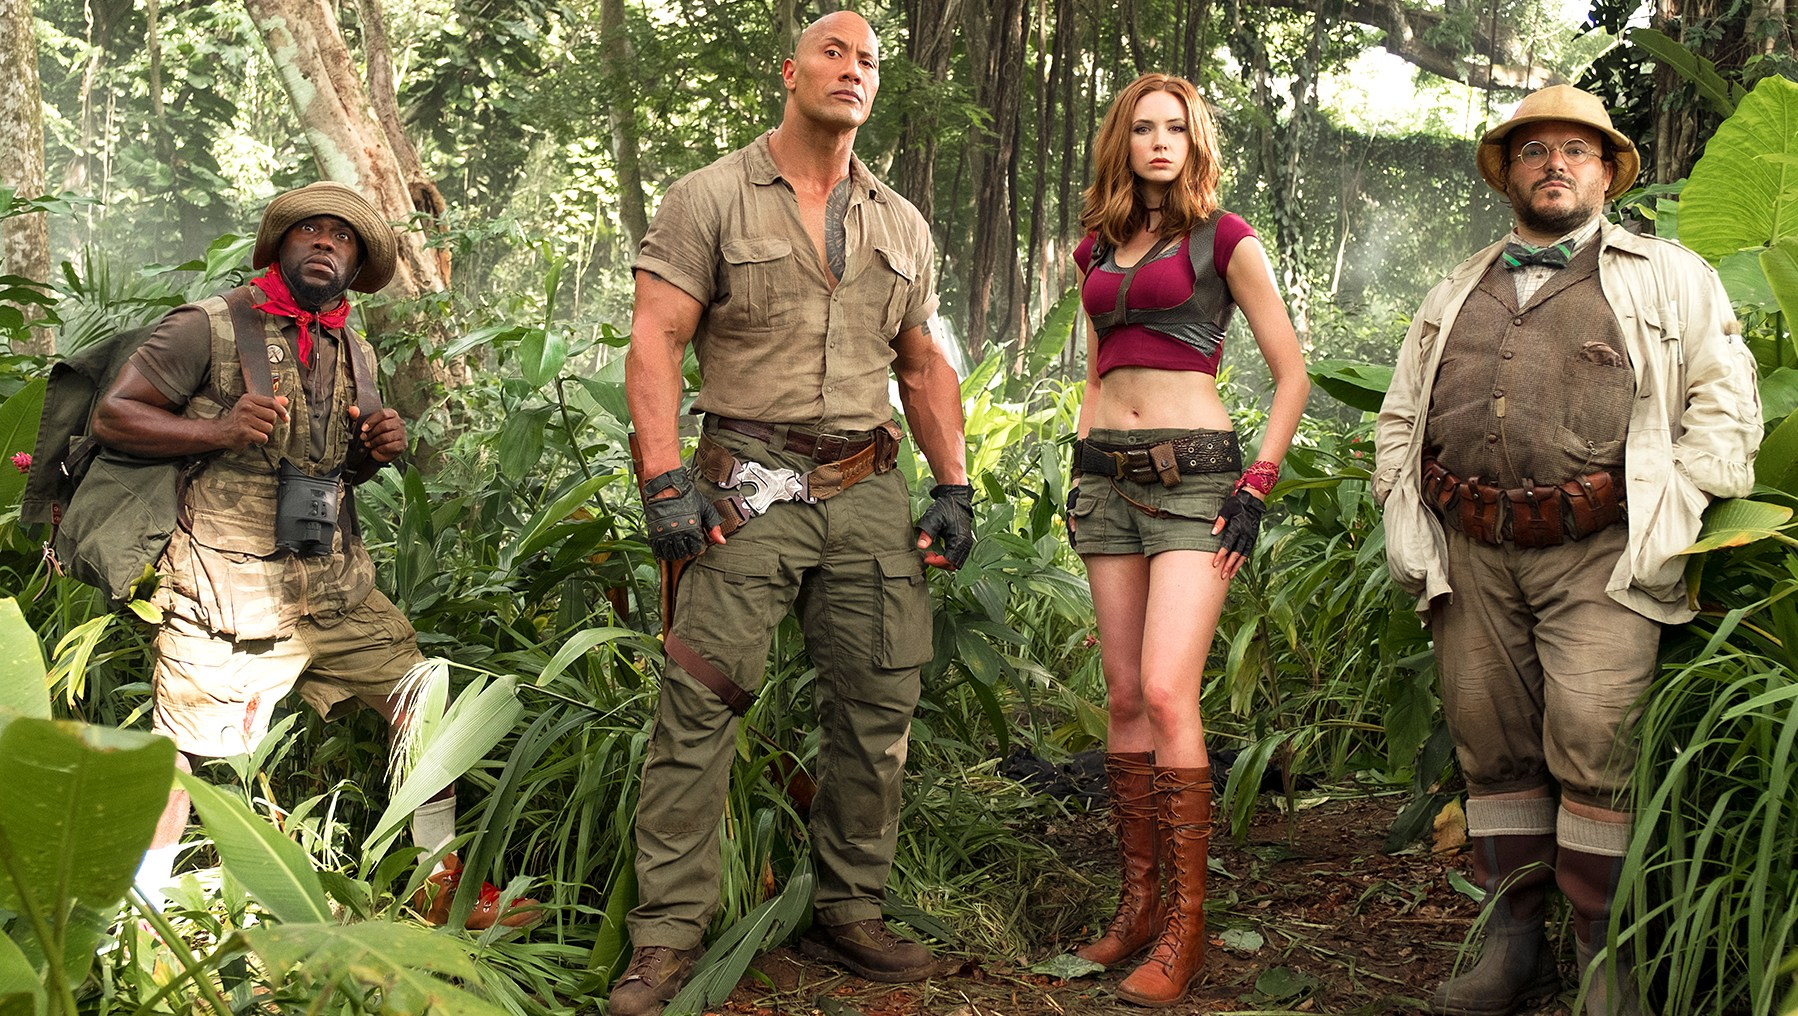 Kevin Hart, Dwayne Johnson, Karen Gillan and Jack Black in Jumanji: Welcome To The Jungle